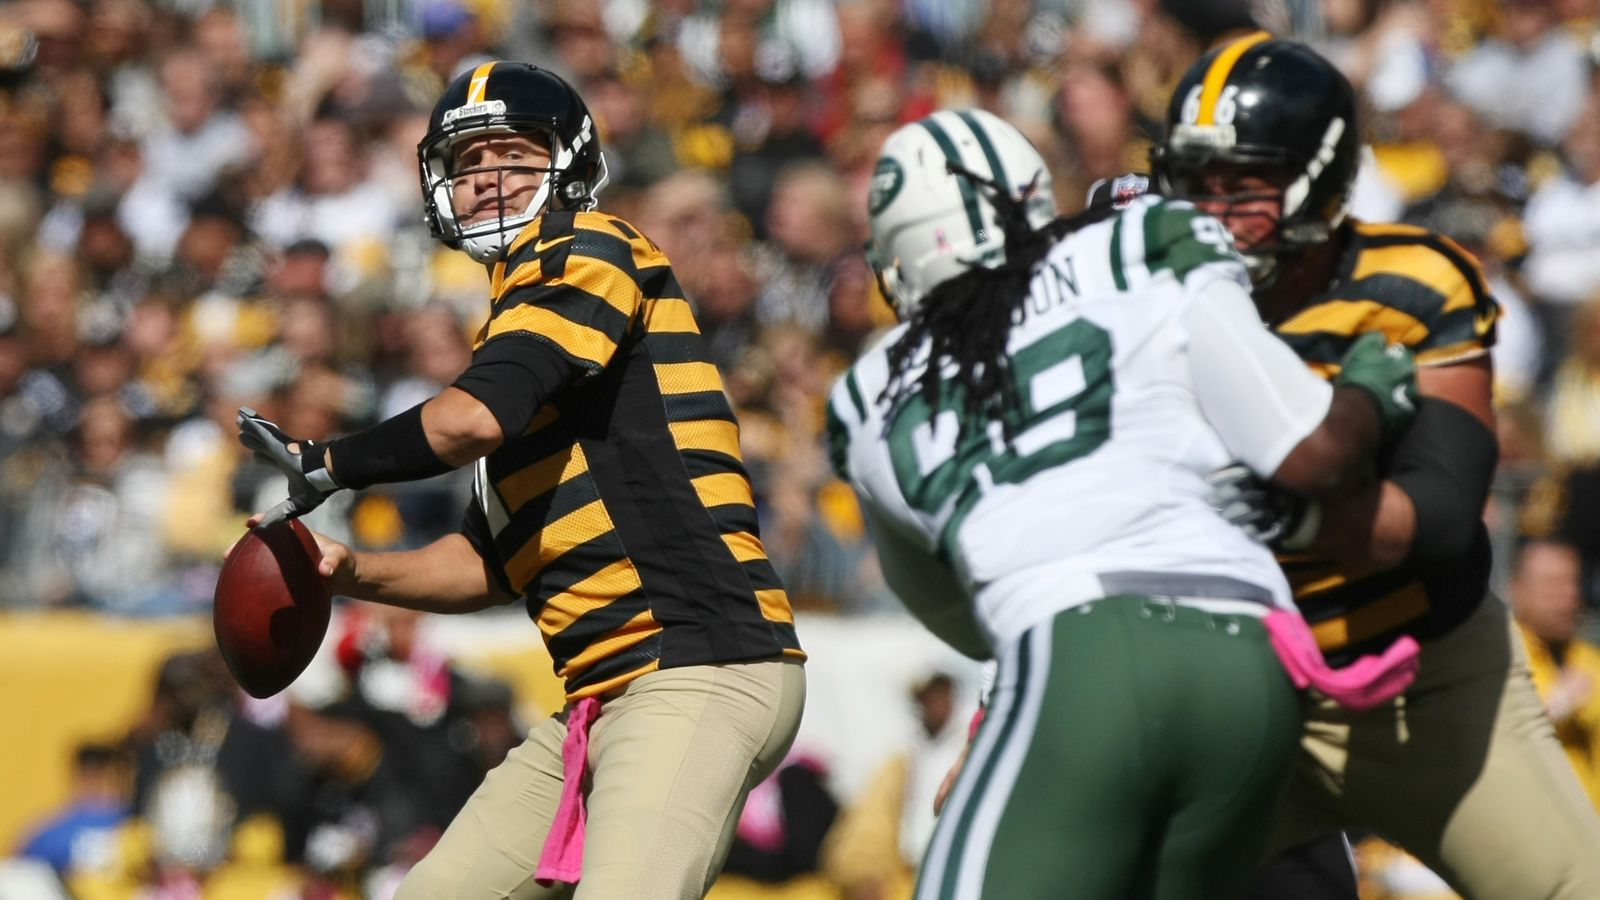 NFL Power Rankings Week 6: Pittsburgh Steelers remain one of the top teams in the league